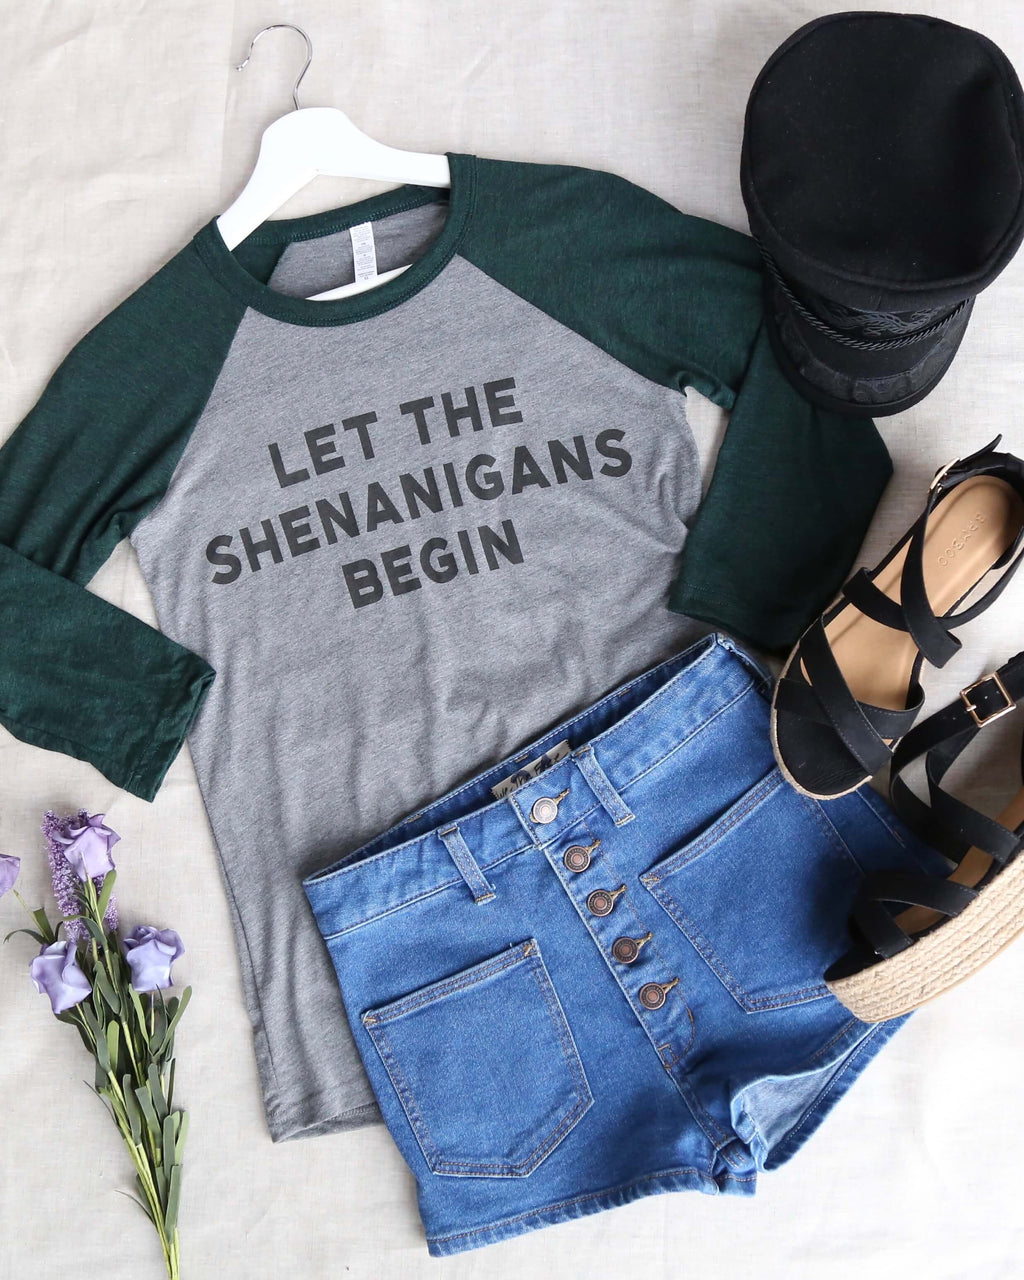 distracted - let the shenanigans begin - saint patrick's day Unisex 3/4 Sleeve Baseball Tee